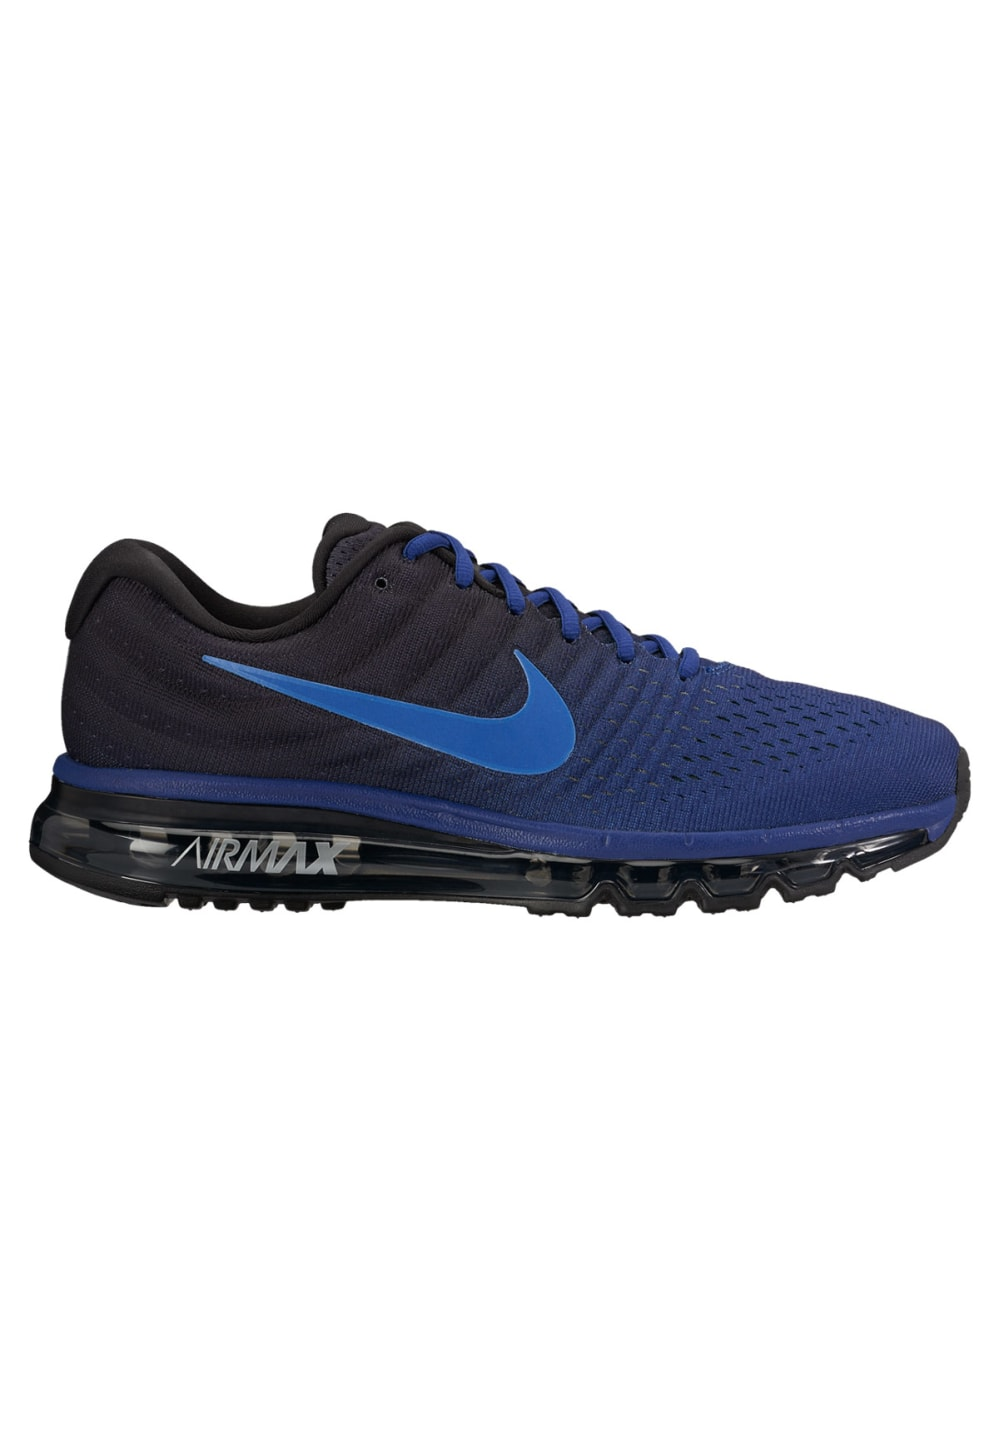 new arrival 40f1c 61326 Nike Air Max 2017 - Running shoes for Men - Black